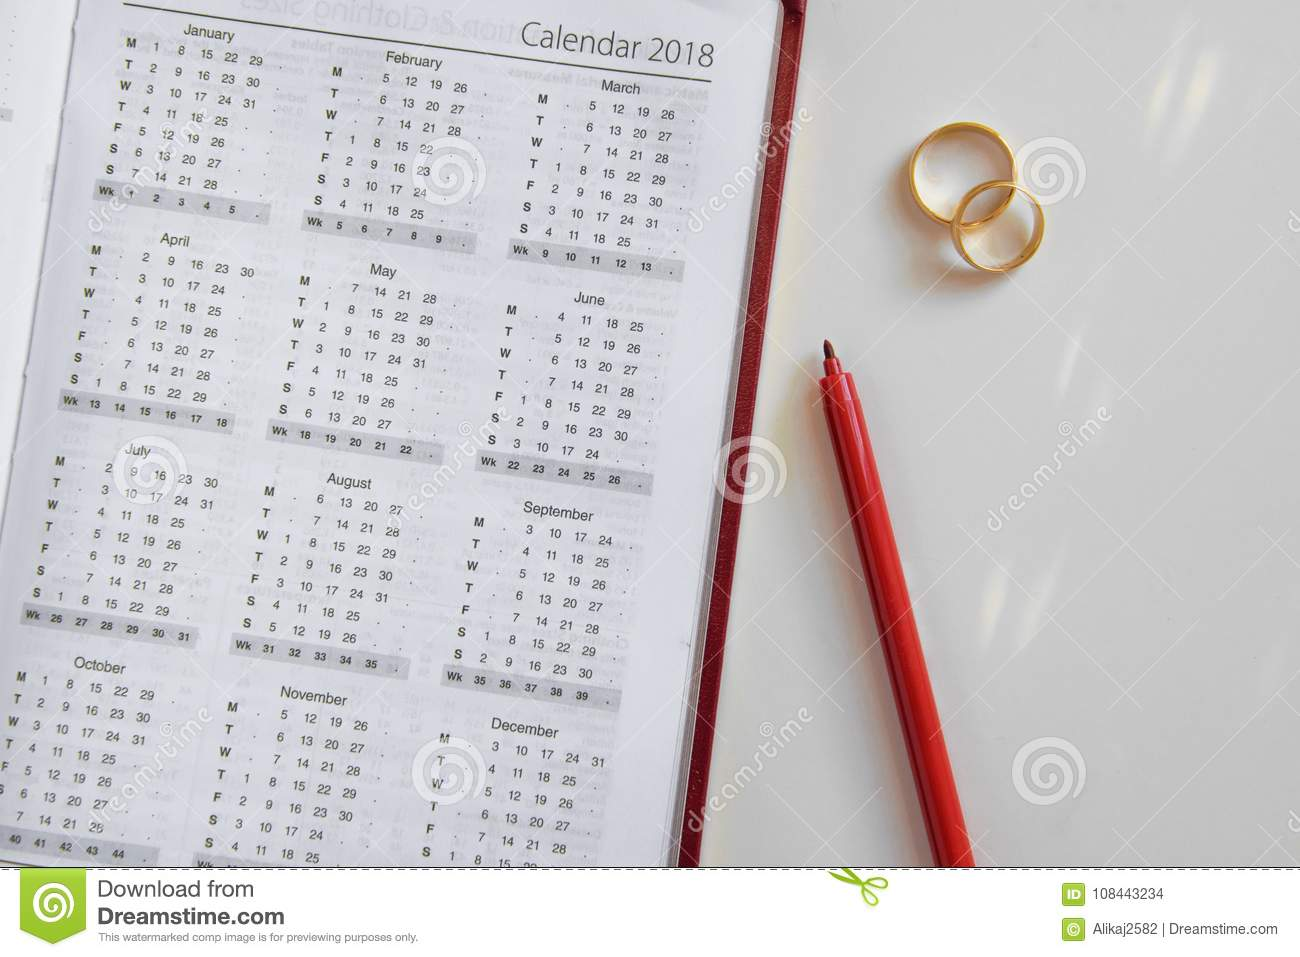 planning a wedding in 2018 calendar of 2018 and two wedding rings and on white